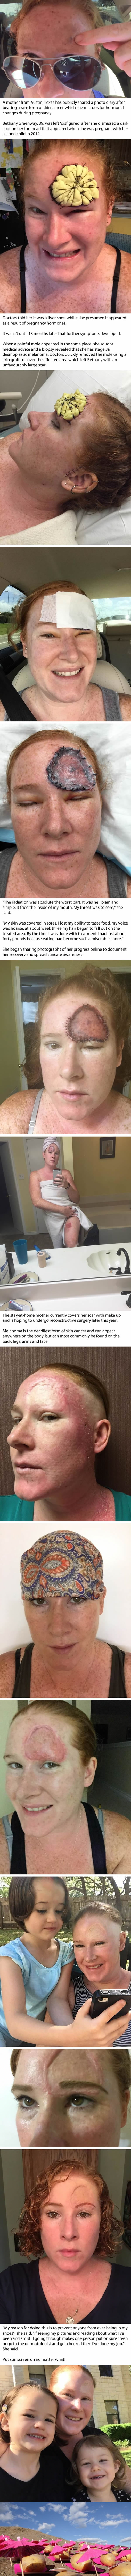 [Graphic] This woman documented her recovery from deadly skin cancer to remind you guys to put sun screen on no matter what